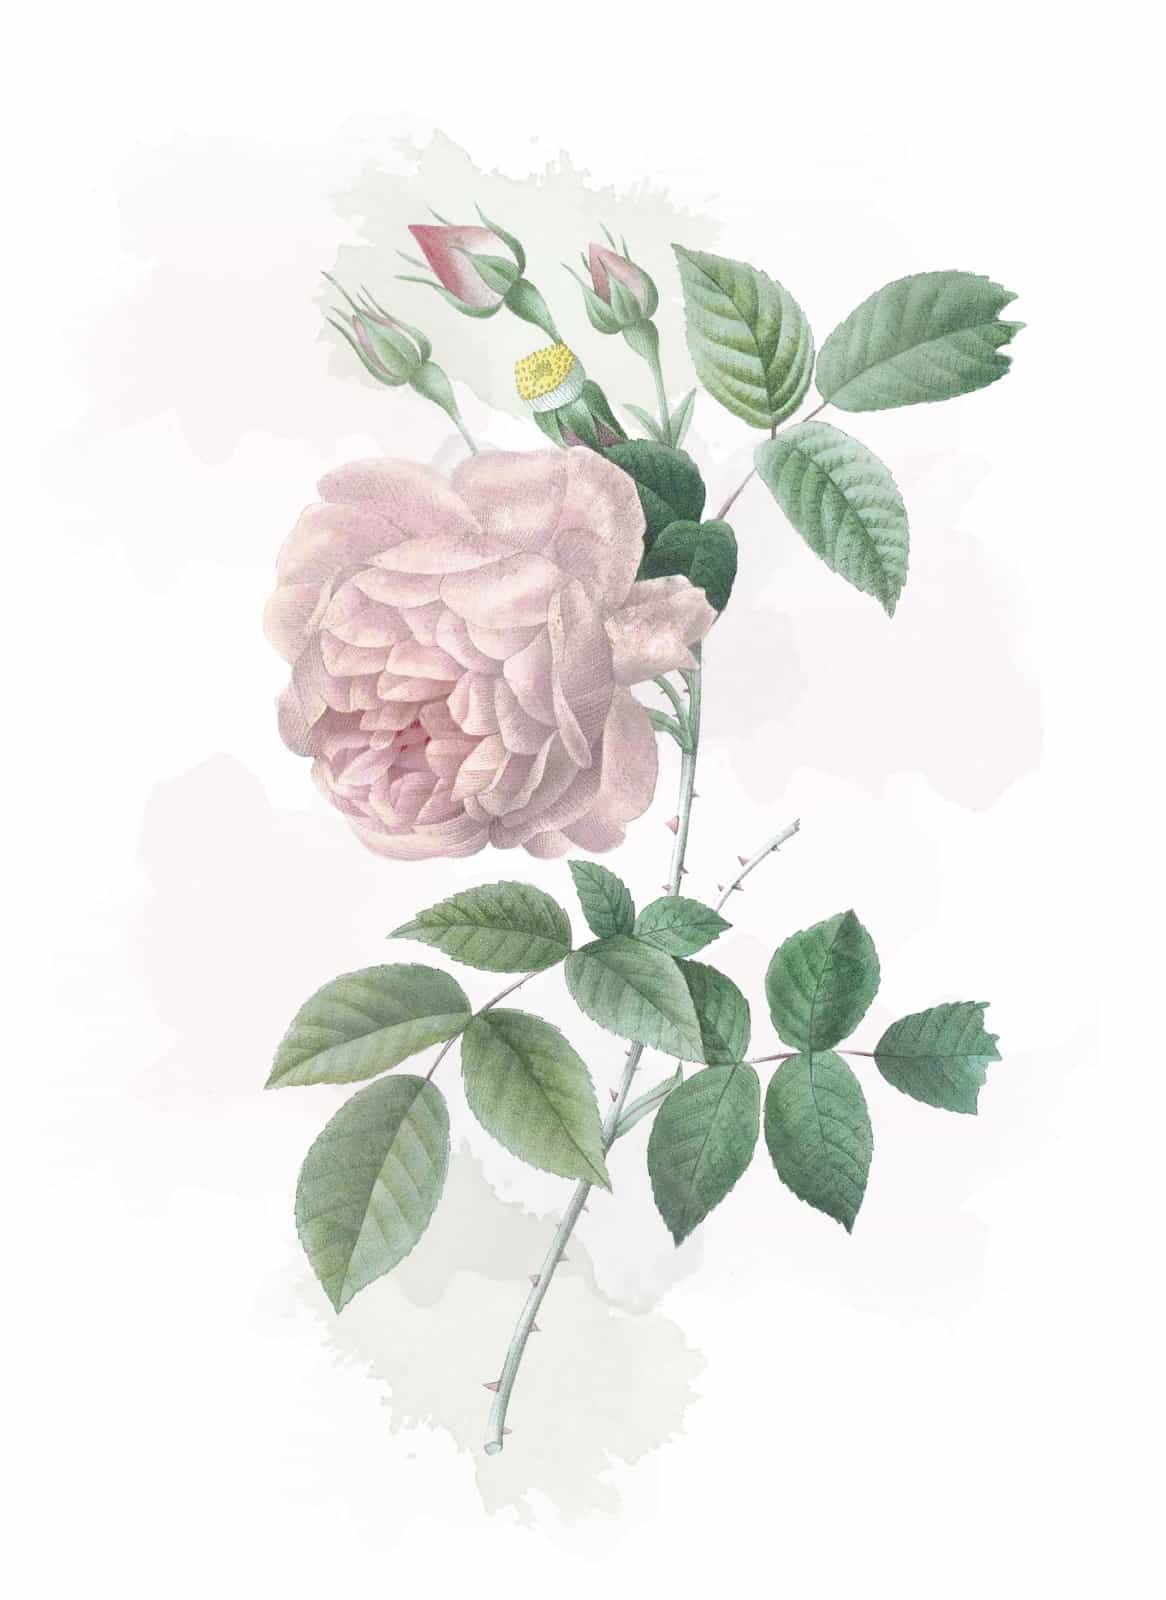 Victorian flowers and their meaning,  meaning of flowers, the language of flowers,  flower language meanings